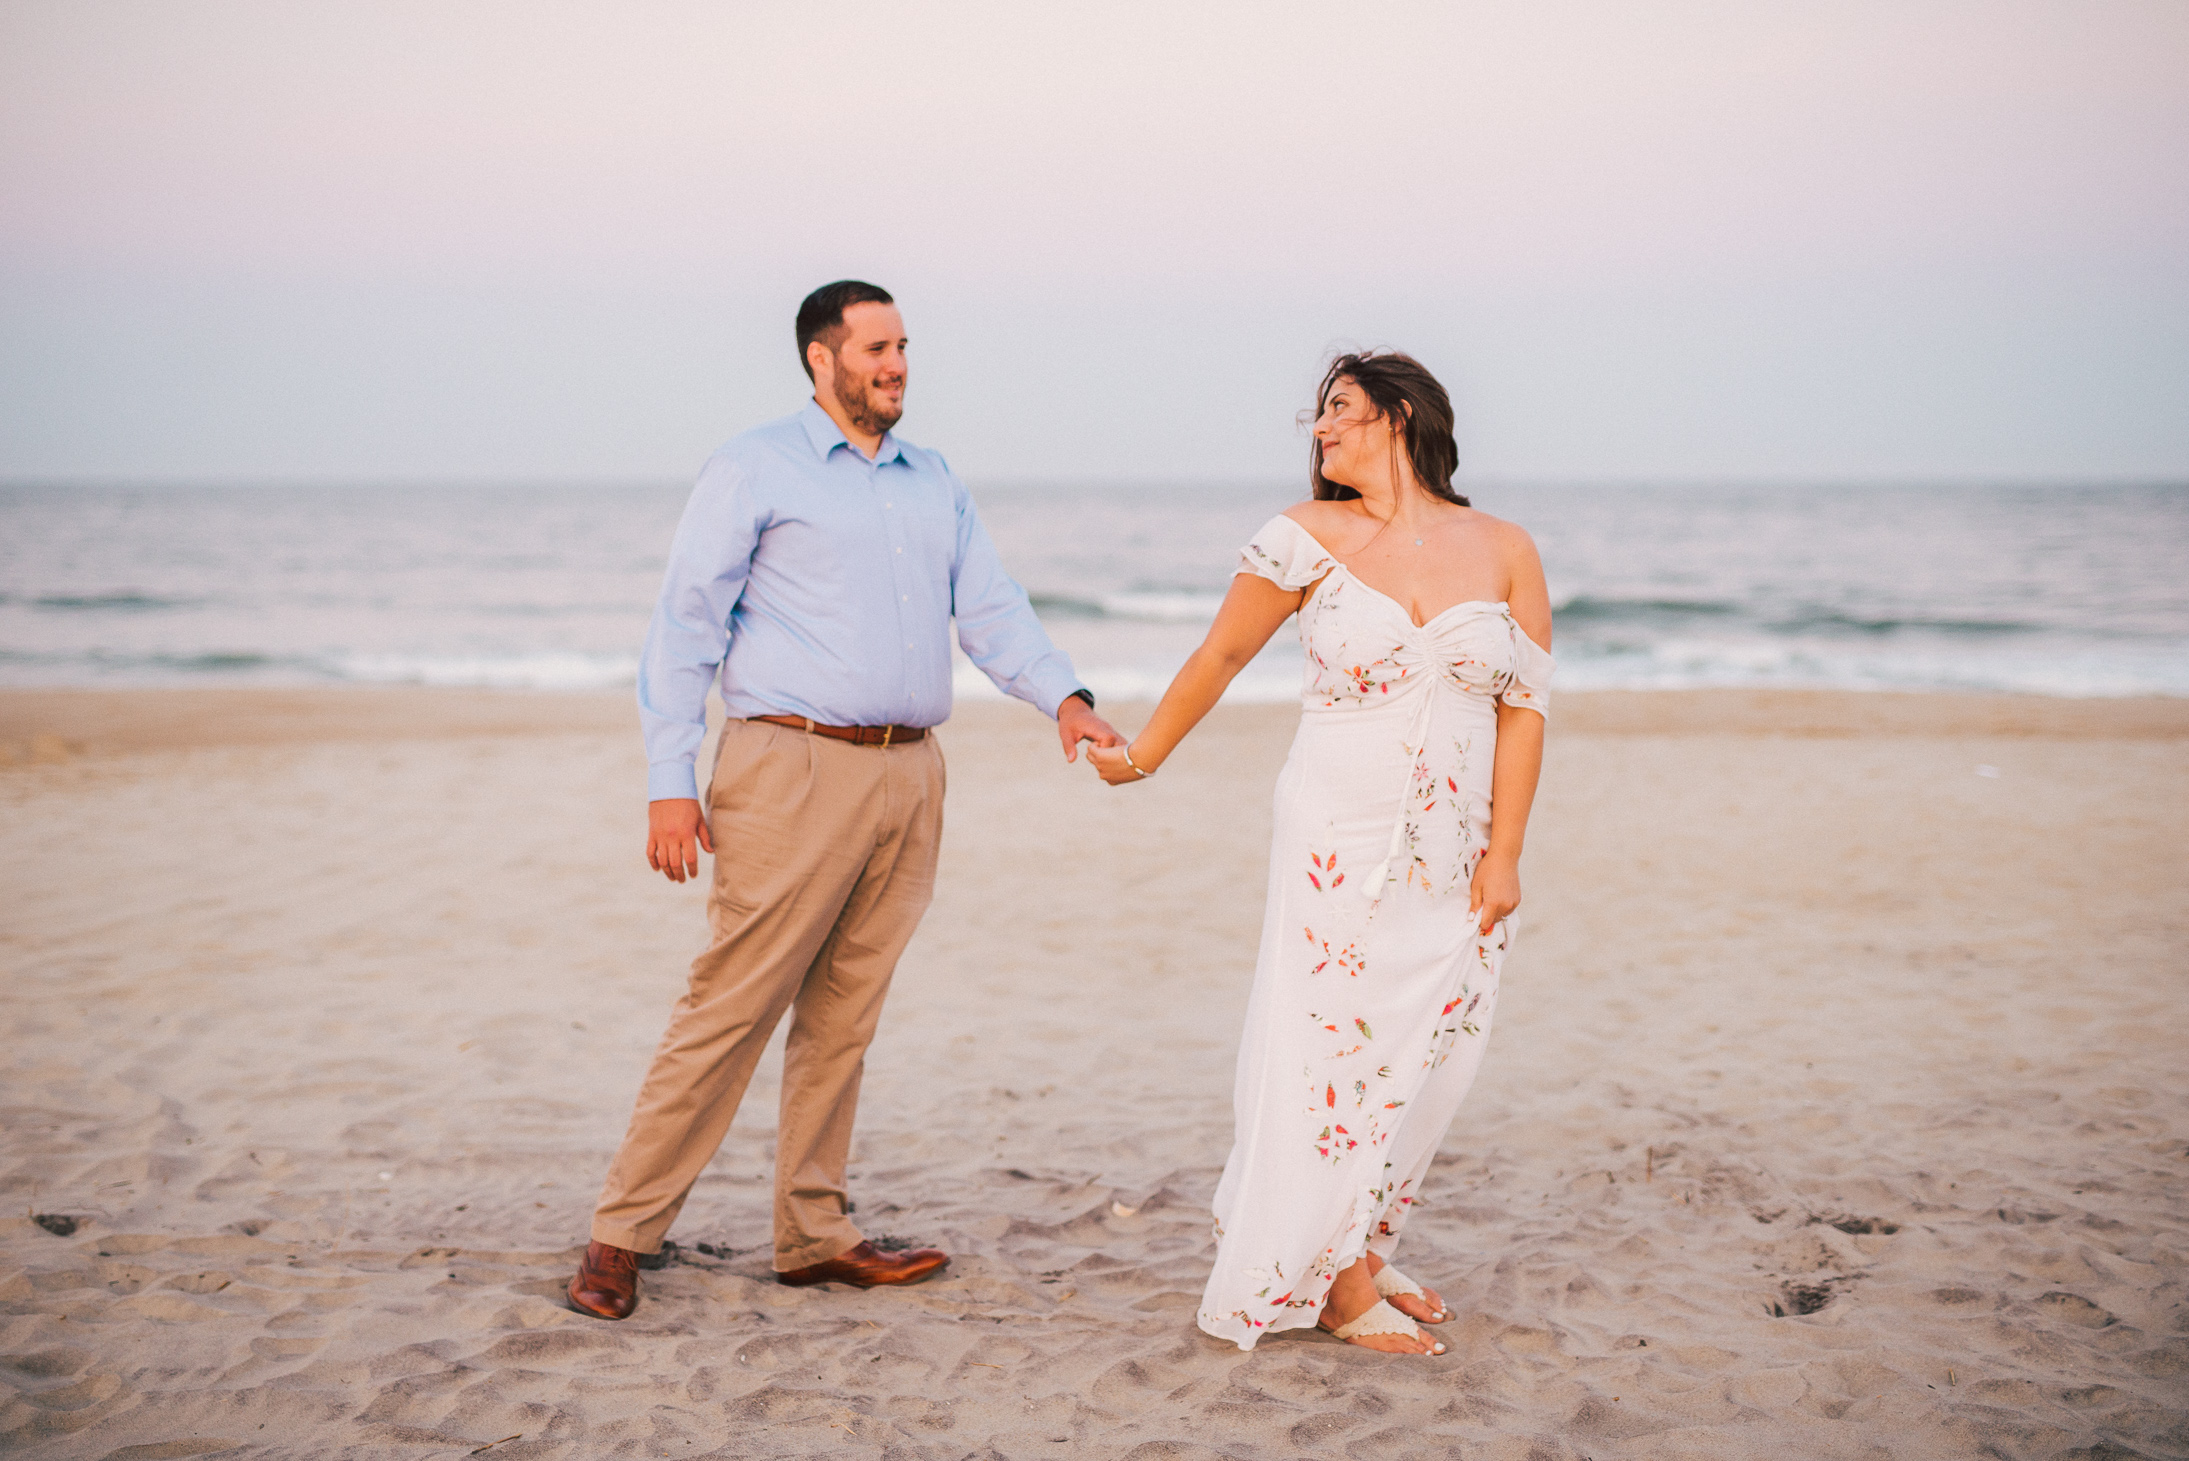 E&K_engagement-207.jpg